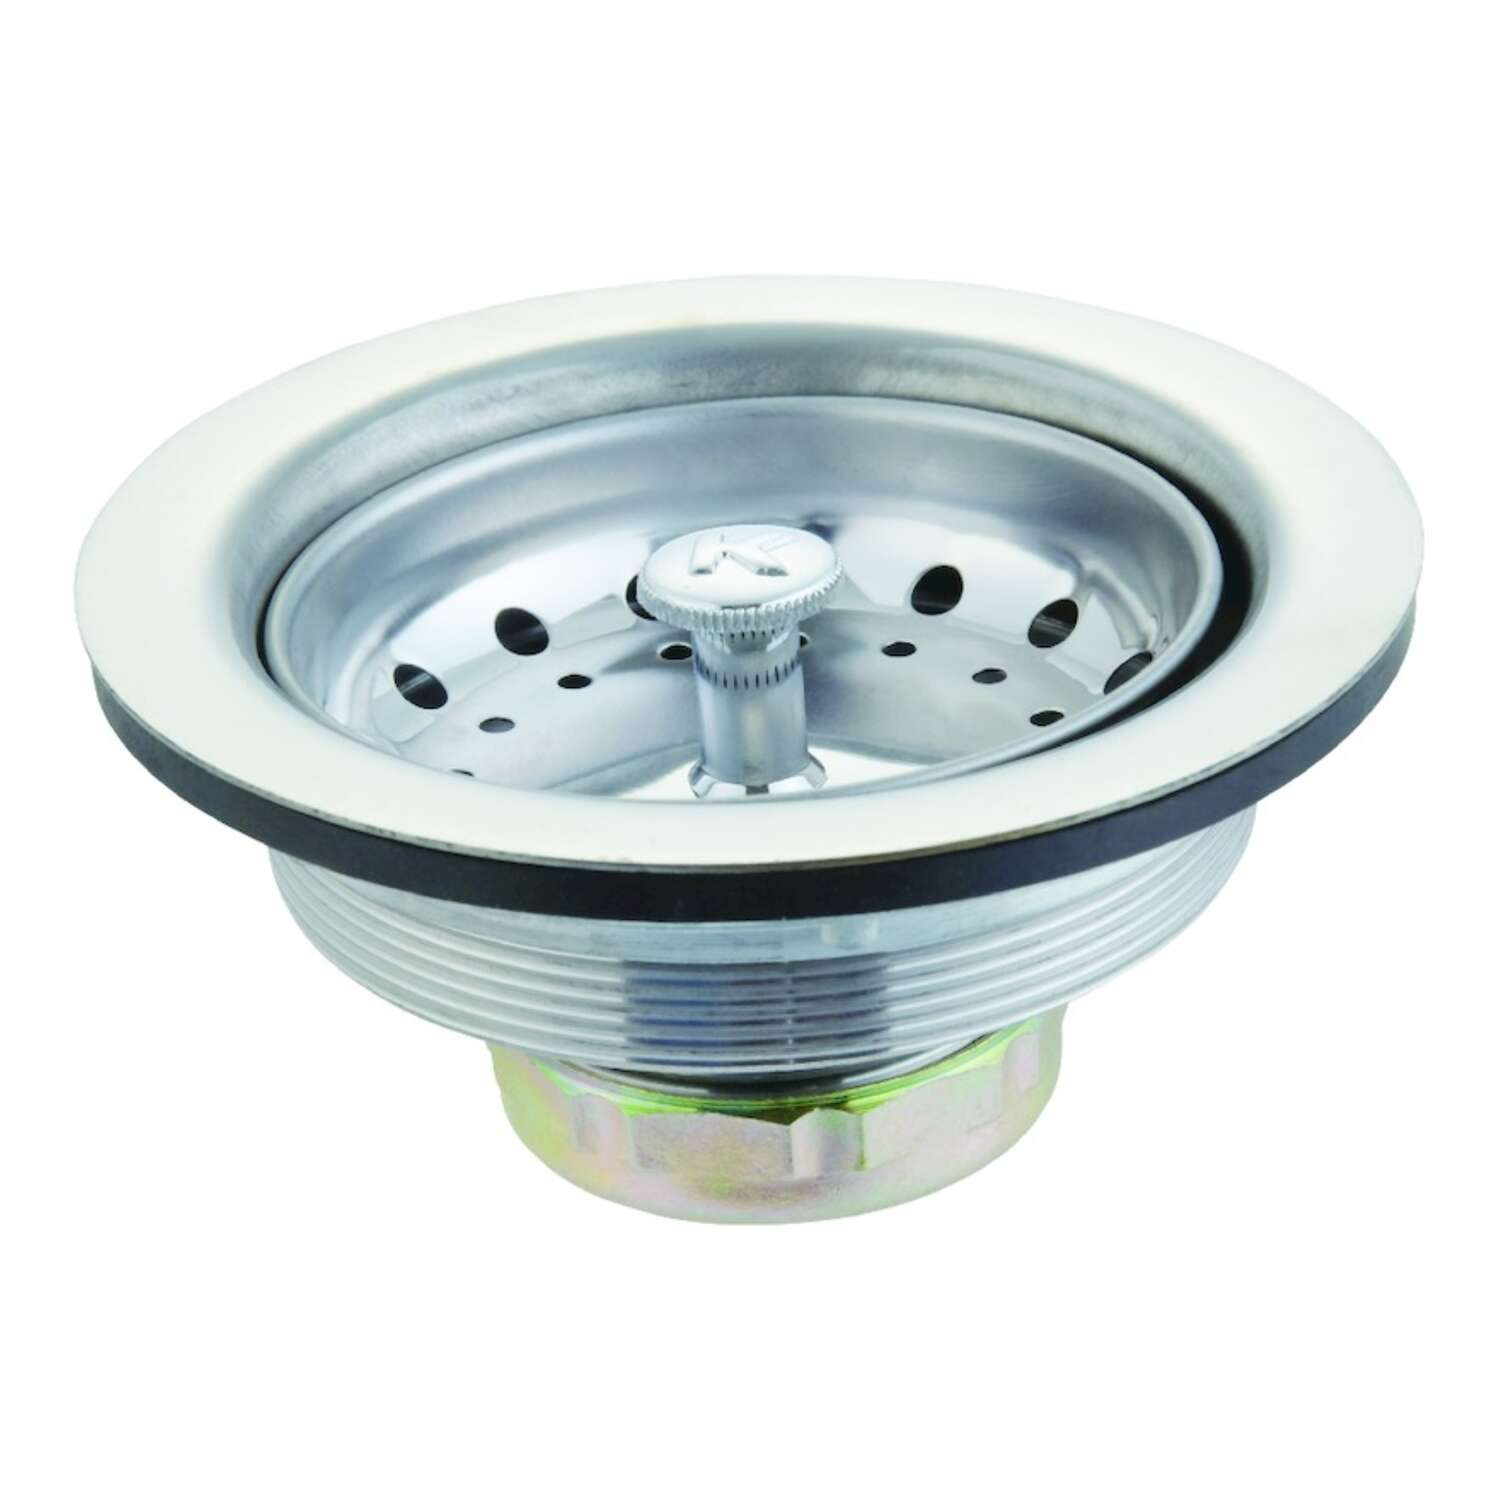 Ace  3-1/2 in. Chrome  Stainless Steel  Basket Strainer Assembly